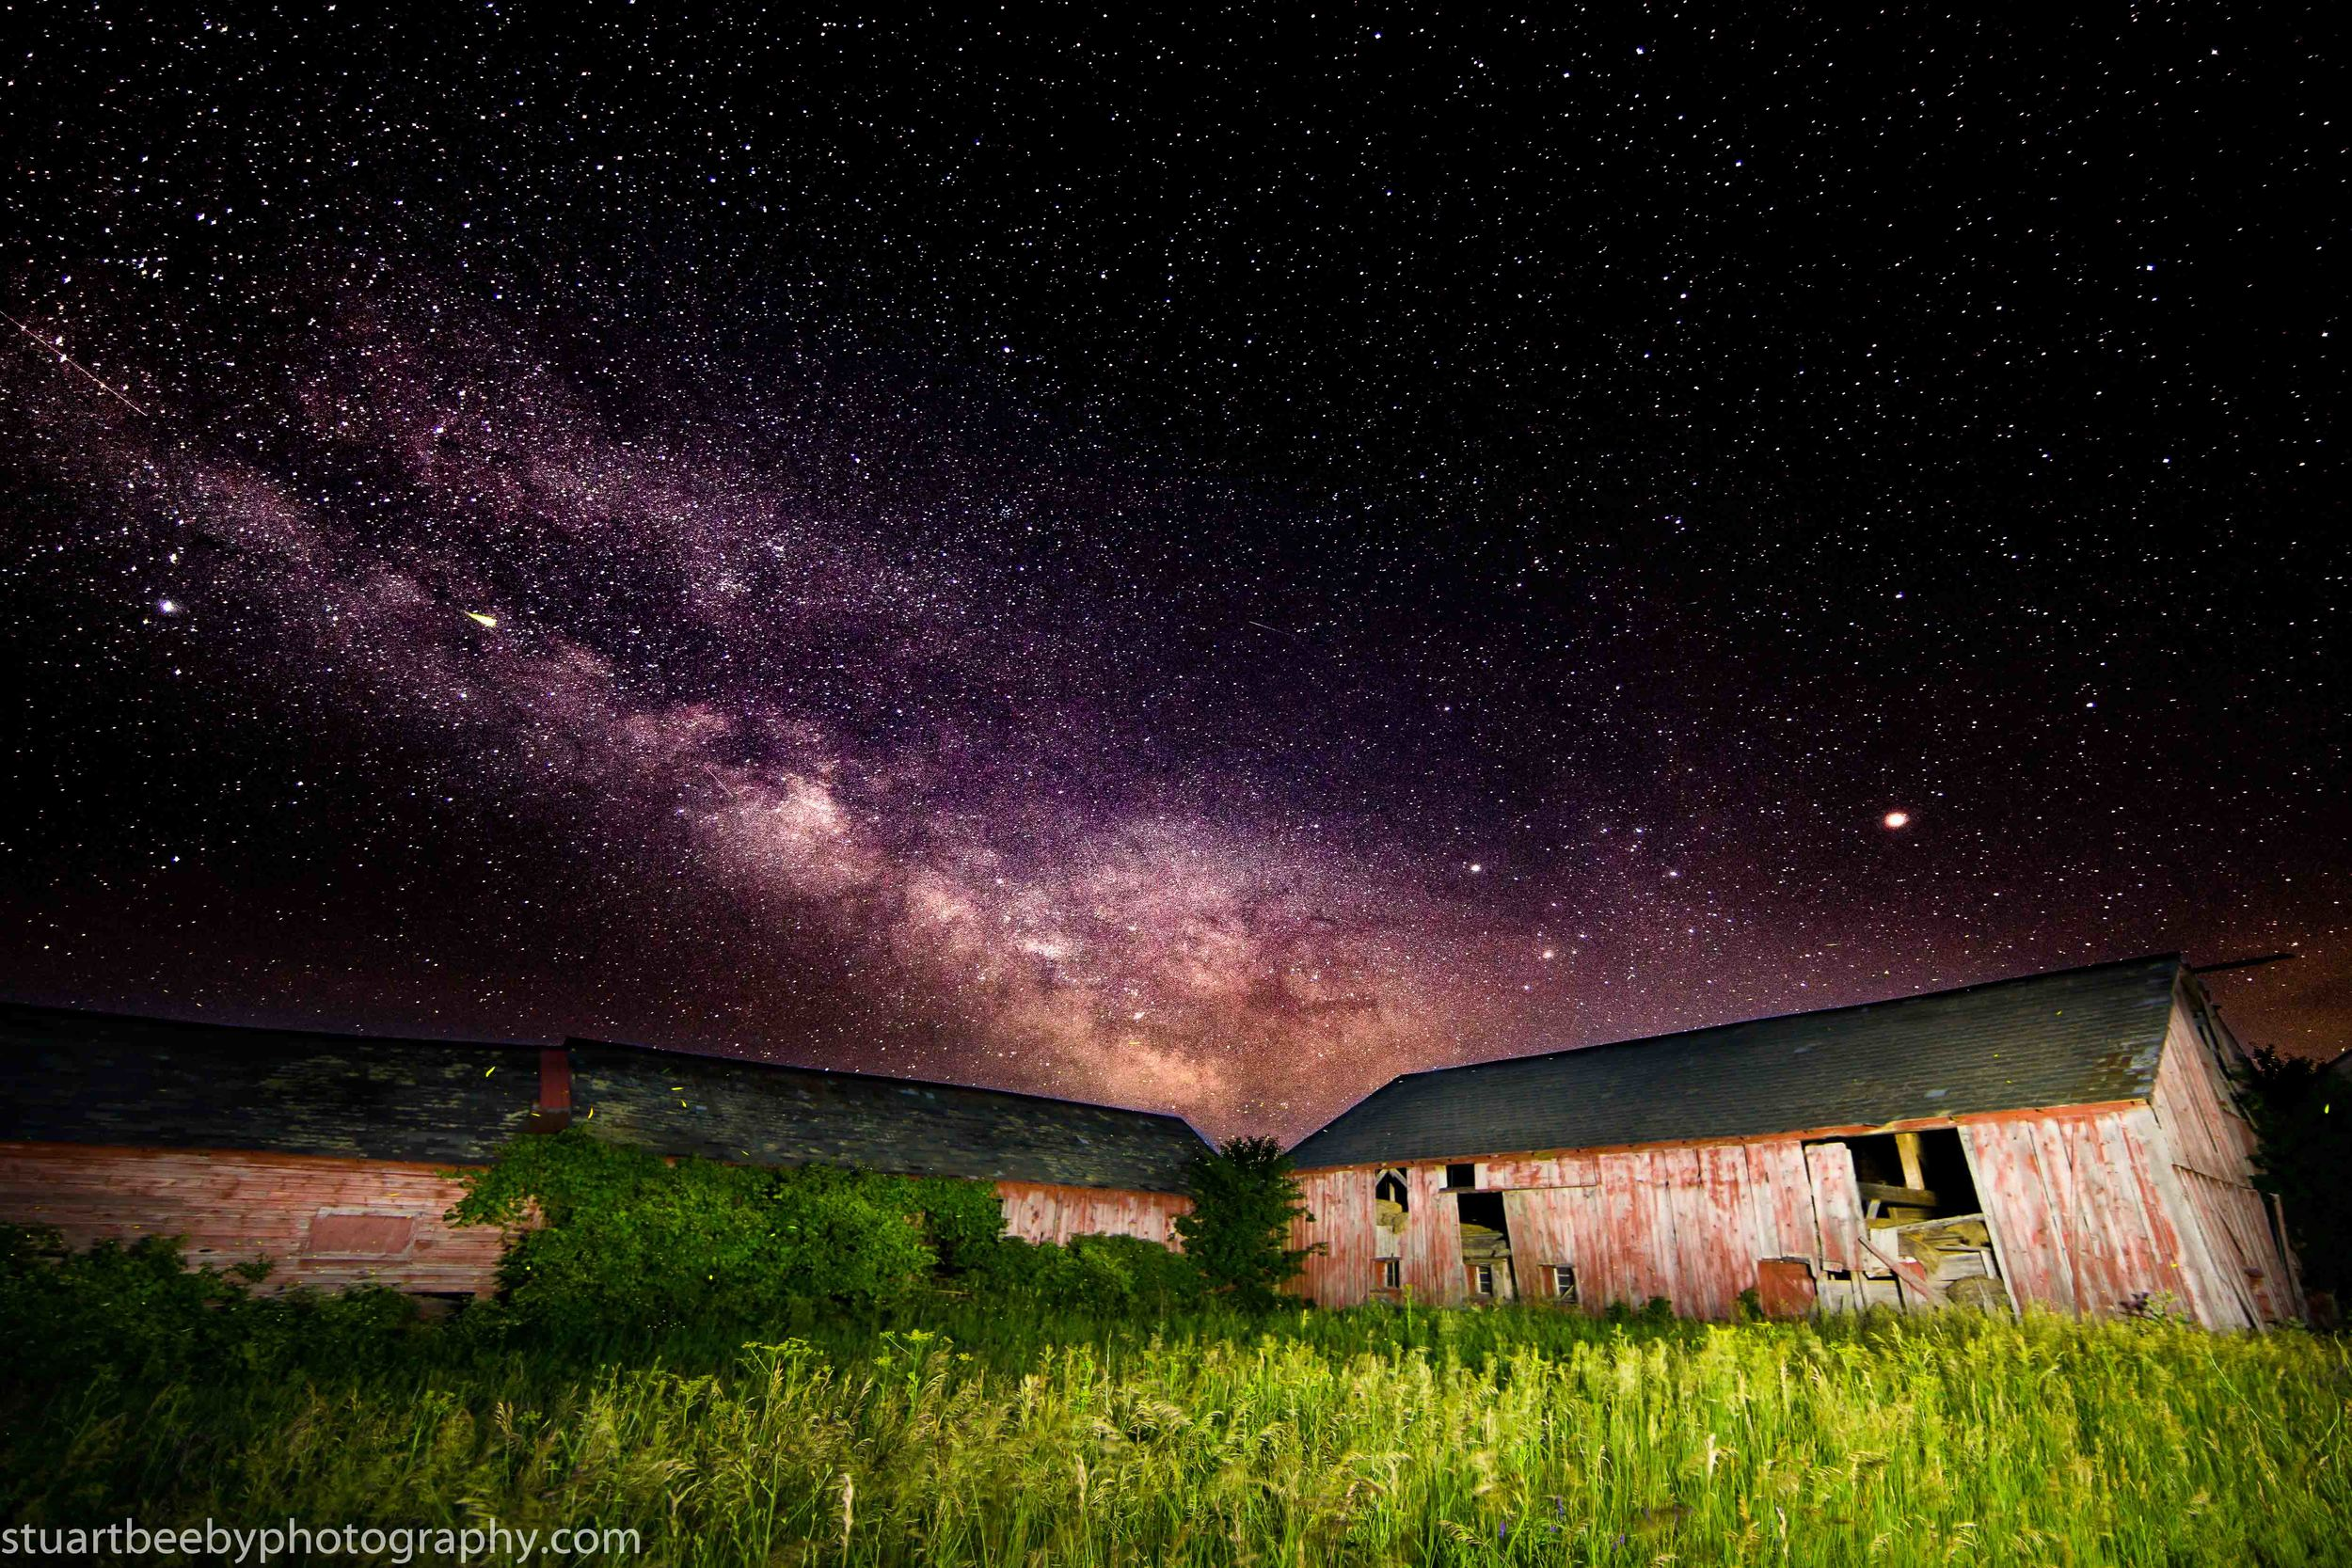 Stuart Beeby: Canon 6D, 14mm, ISO 2500, F2.8, 15 seconds